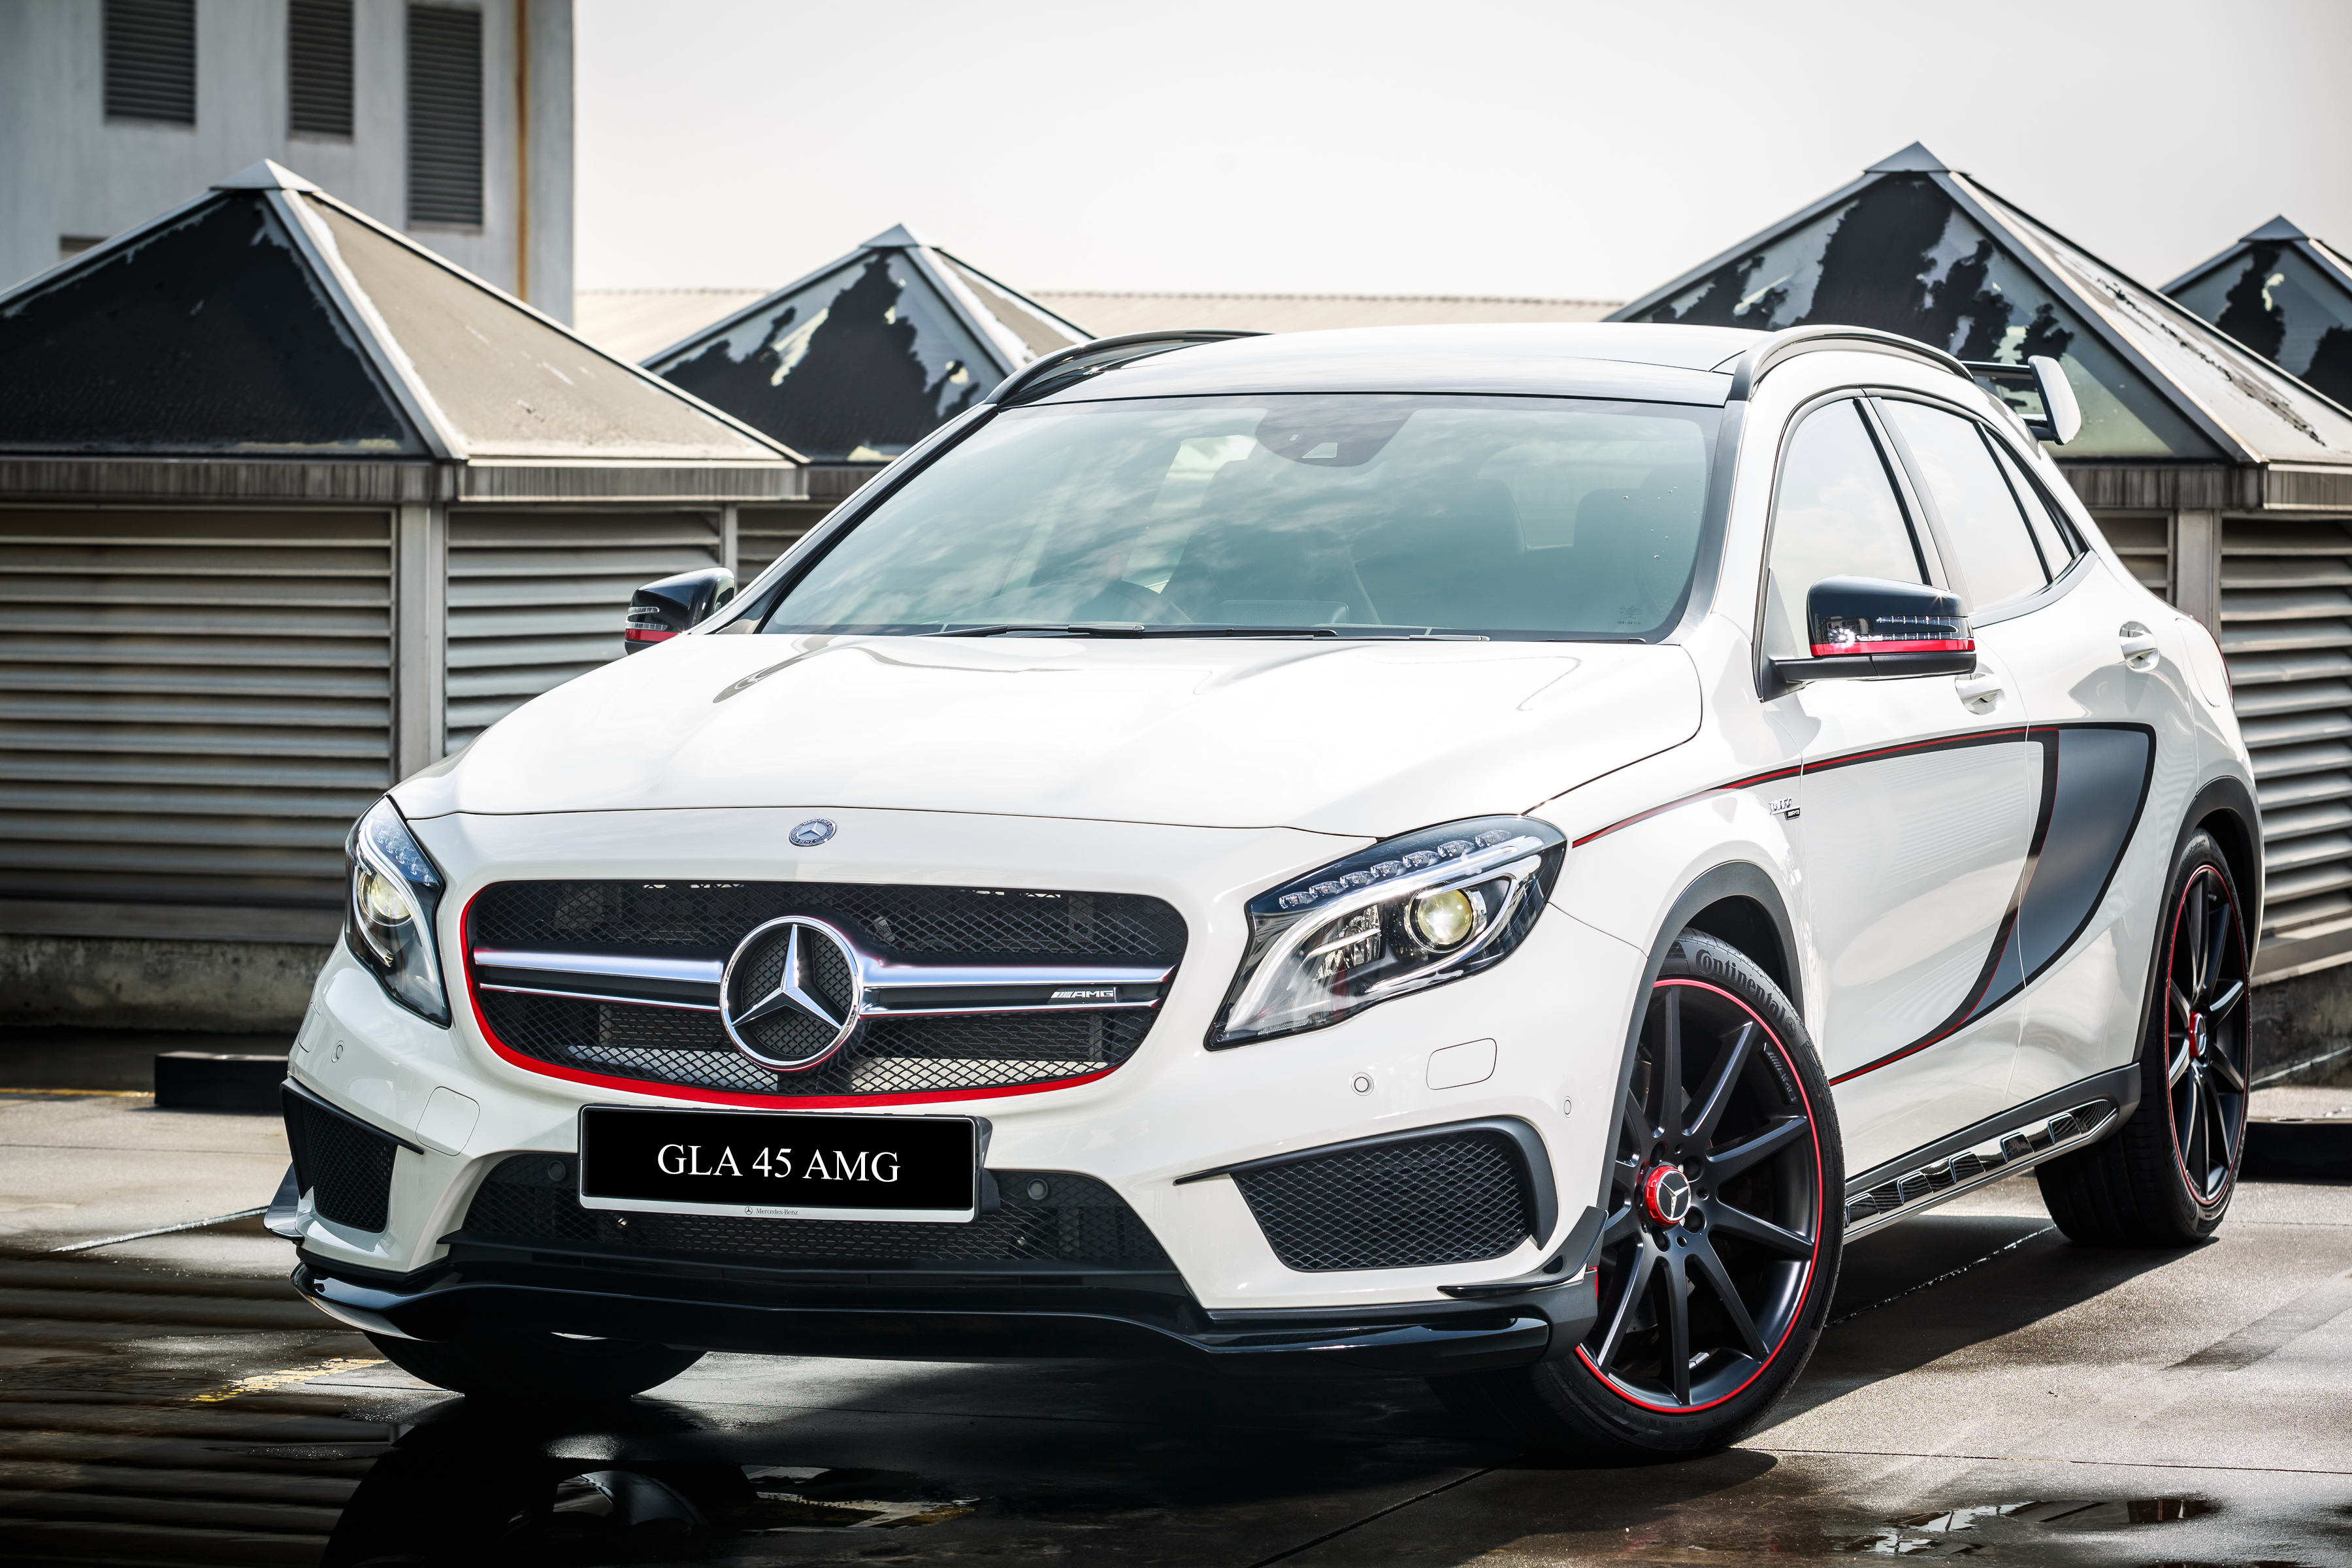 mercedes benz cla 45 amg and gla 45 amg to gain a 45 facelift 39 s revised 381 hp and 475 nm output. Black Bedroom Furniture Sets. Home Design Ideas